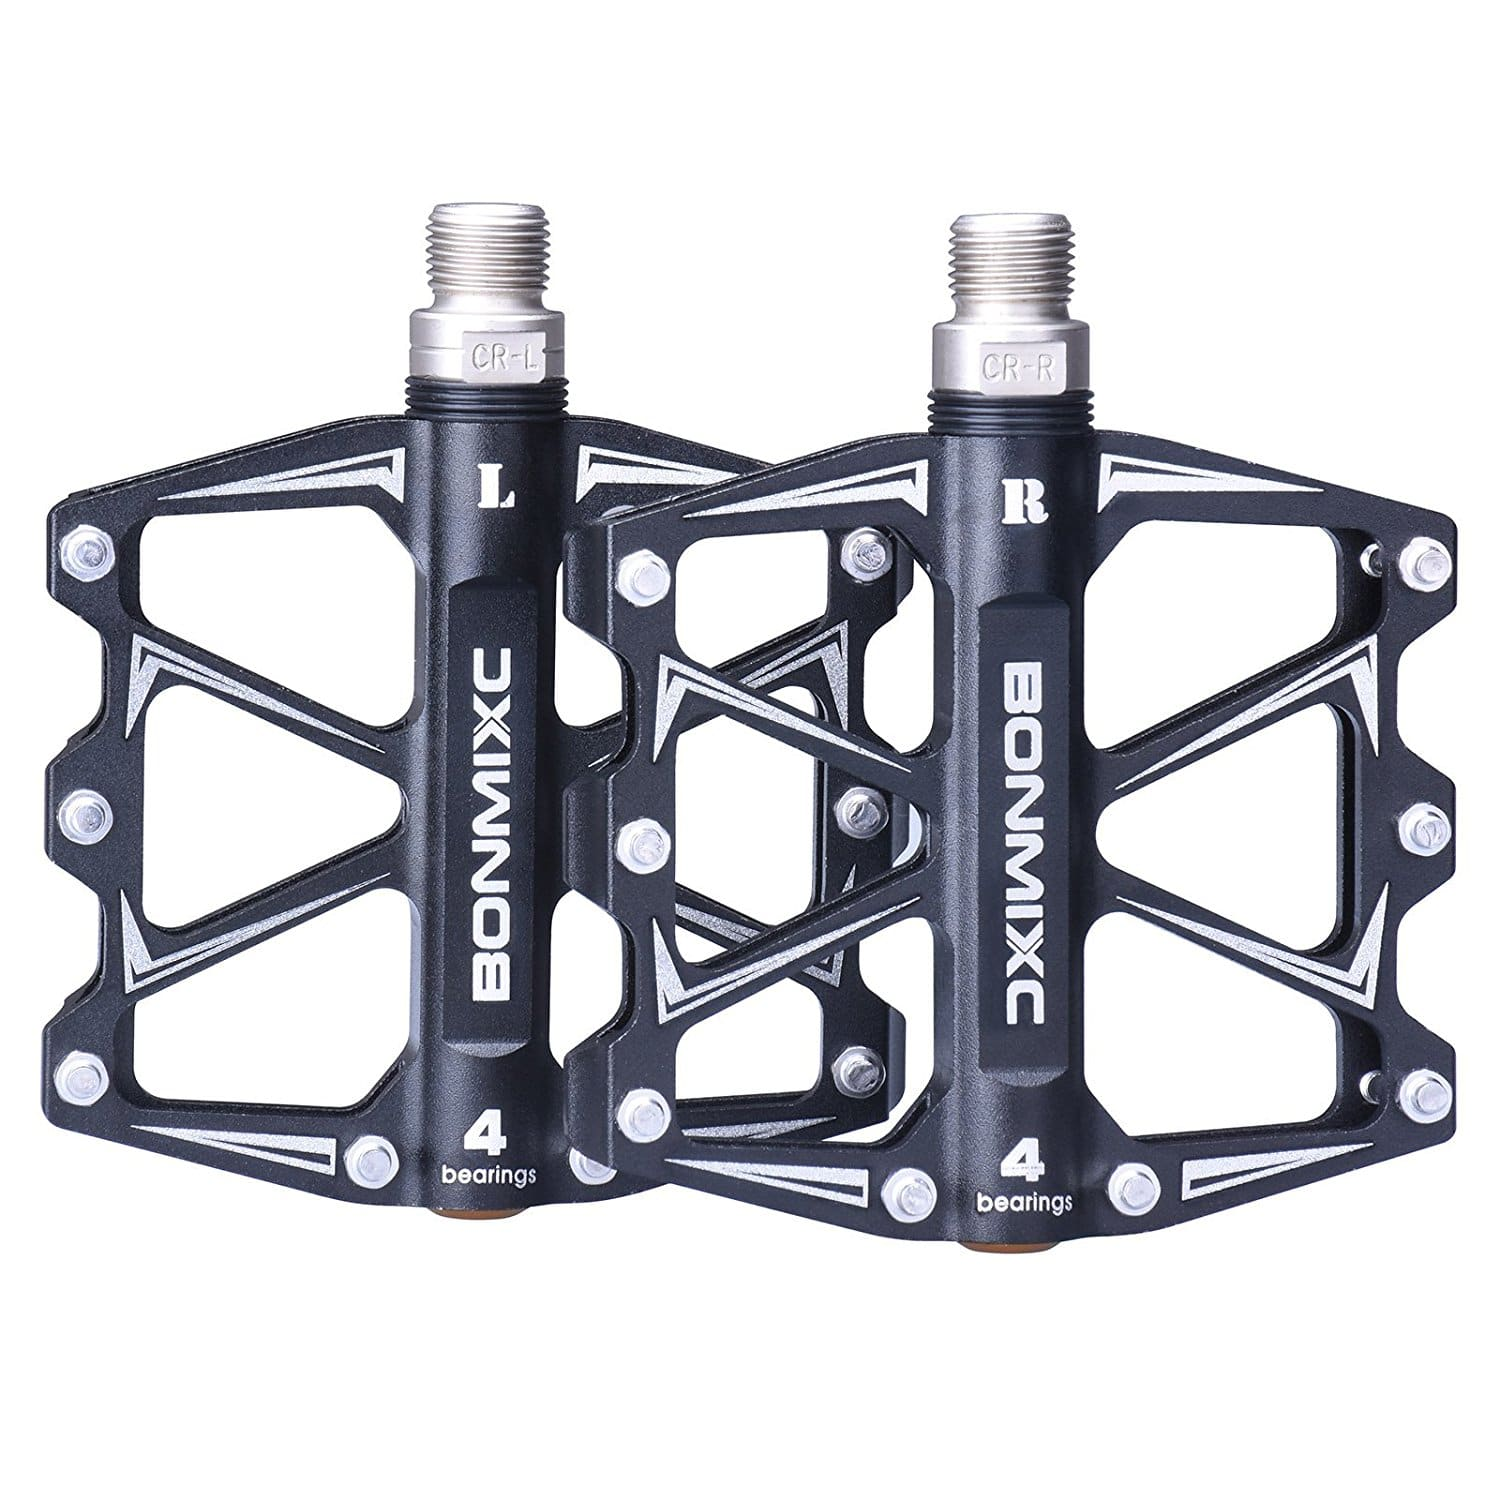 """Bonmixc Mountain Bike Pedals 9/16"""" Cycling Four Pcs Sealed Bearing Bicycle Pedals for $20.99"""